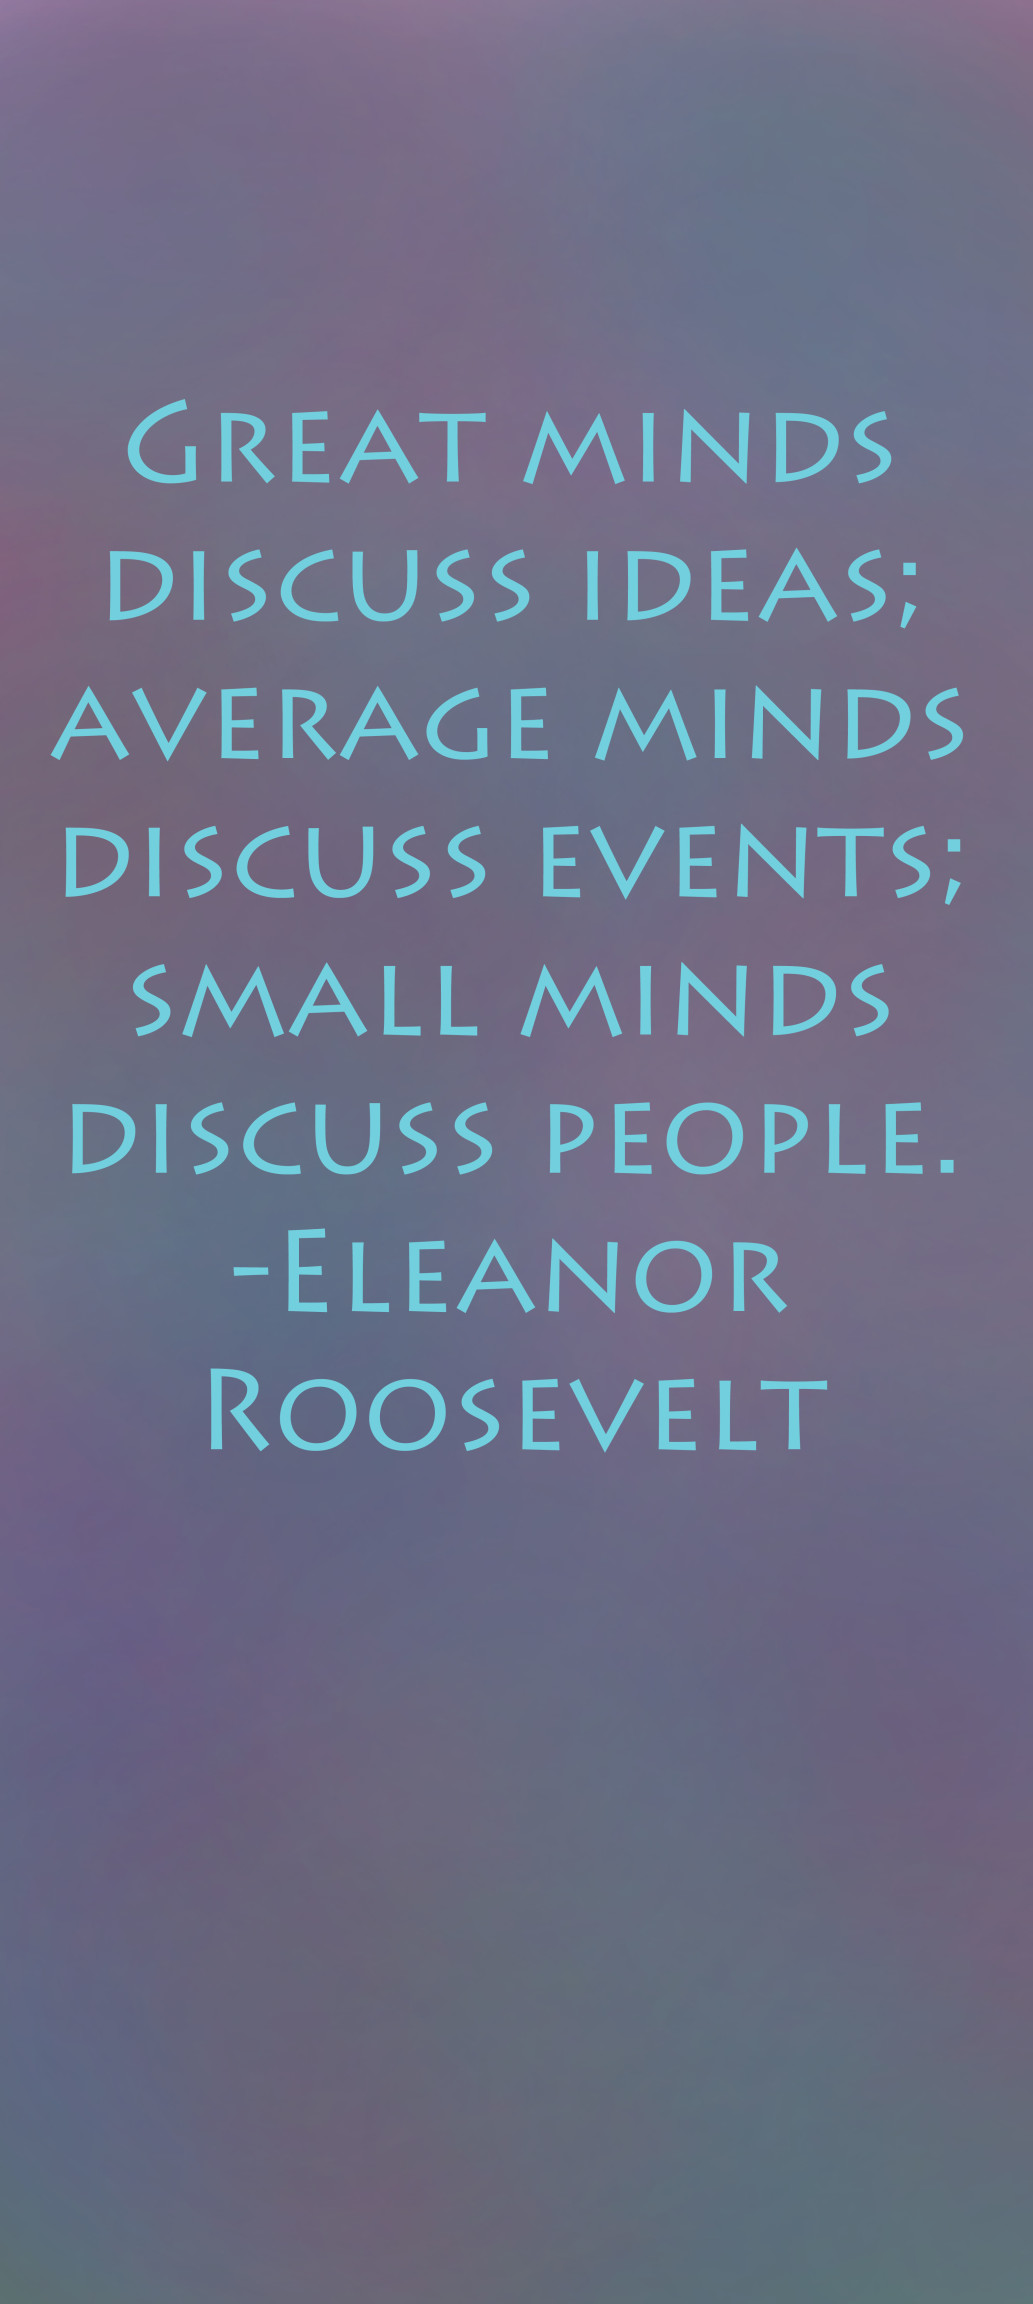 Inspirational Quote of the Week 9/27/2015